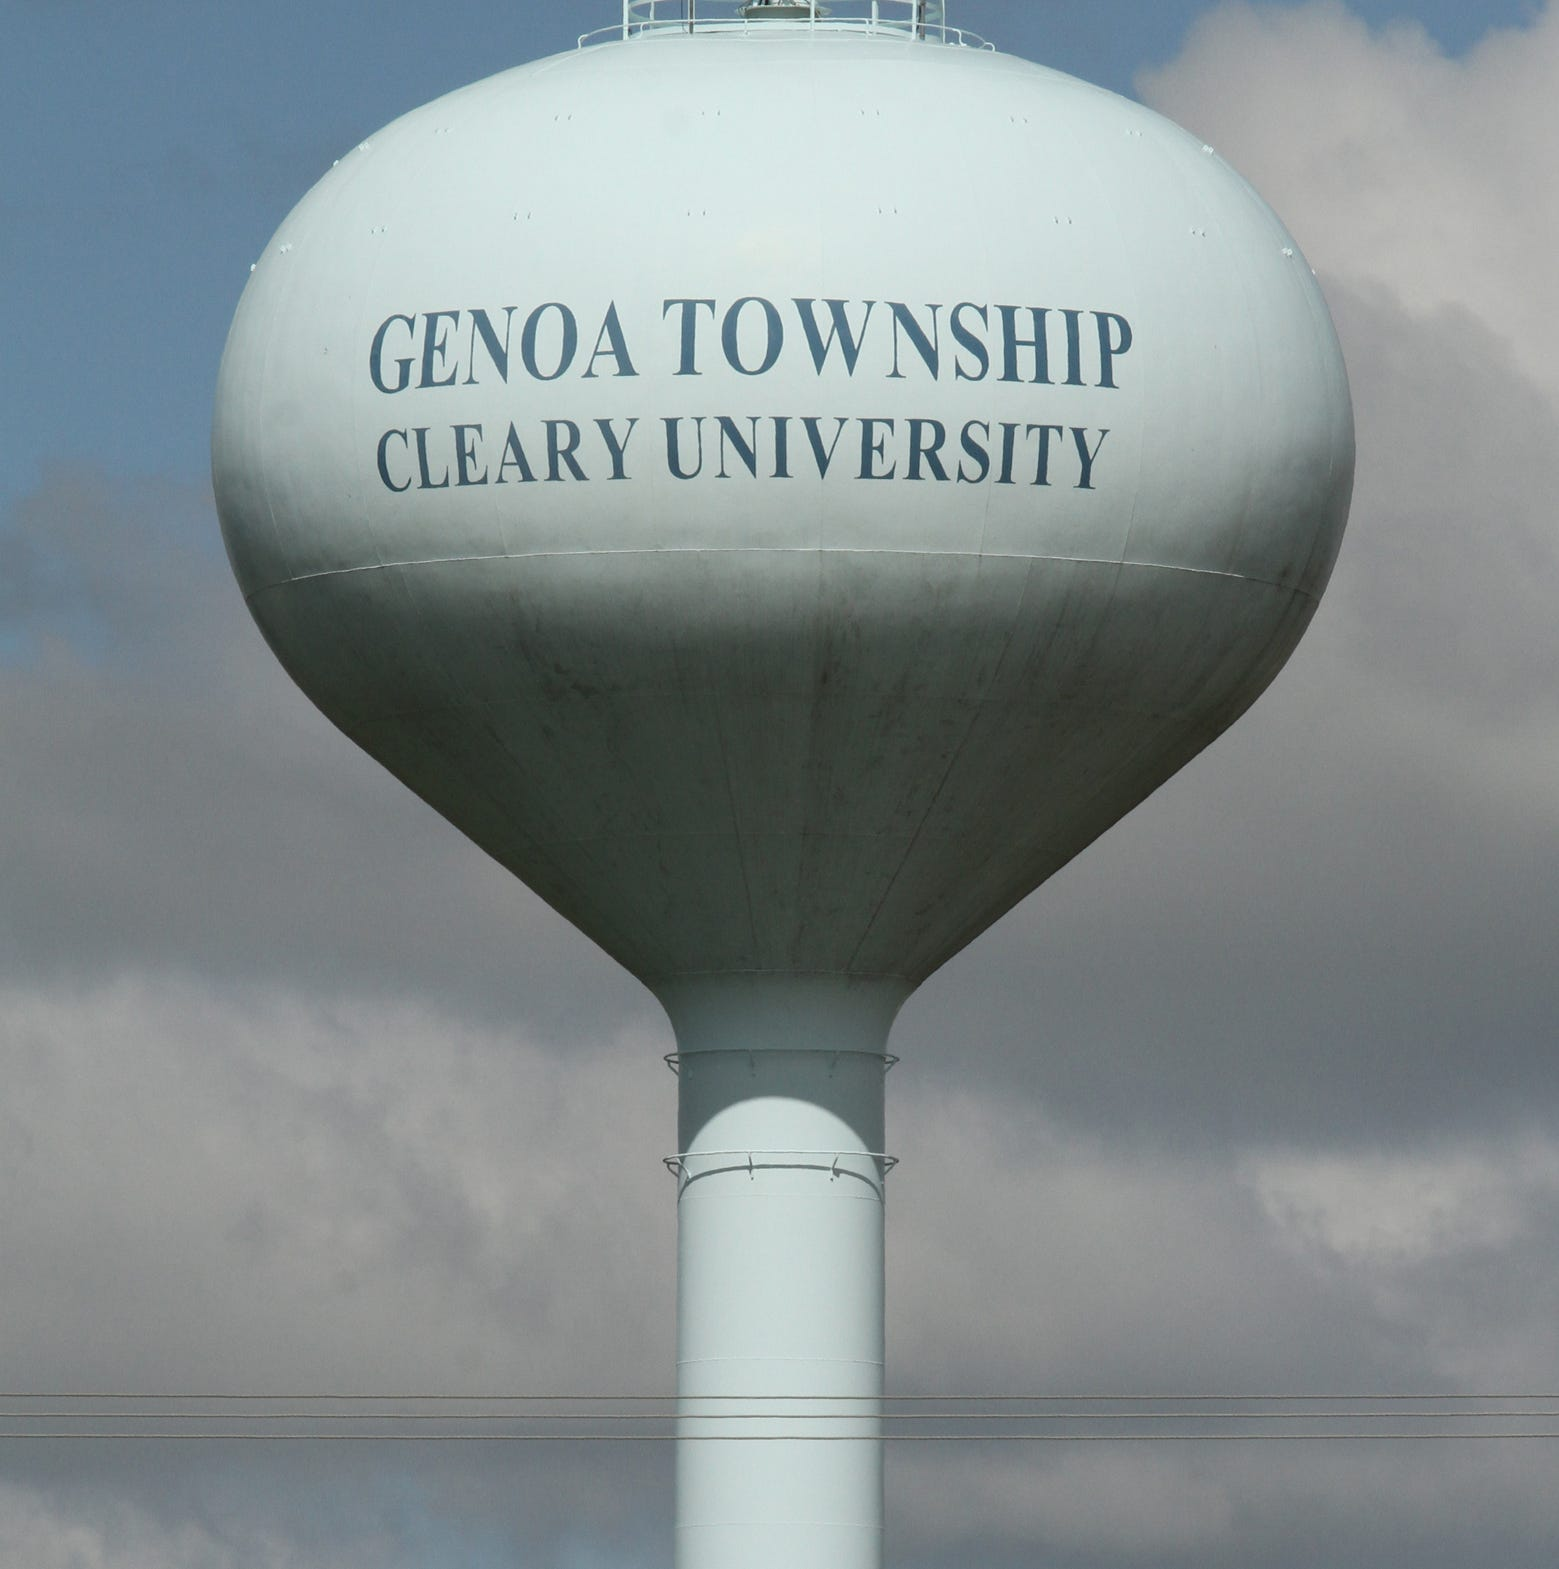 Trash, zoning board cost increases proposed in Genoa Township